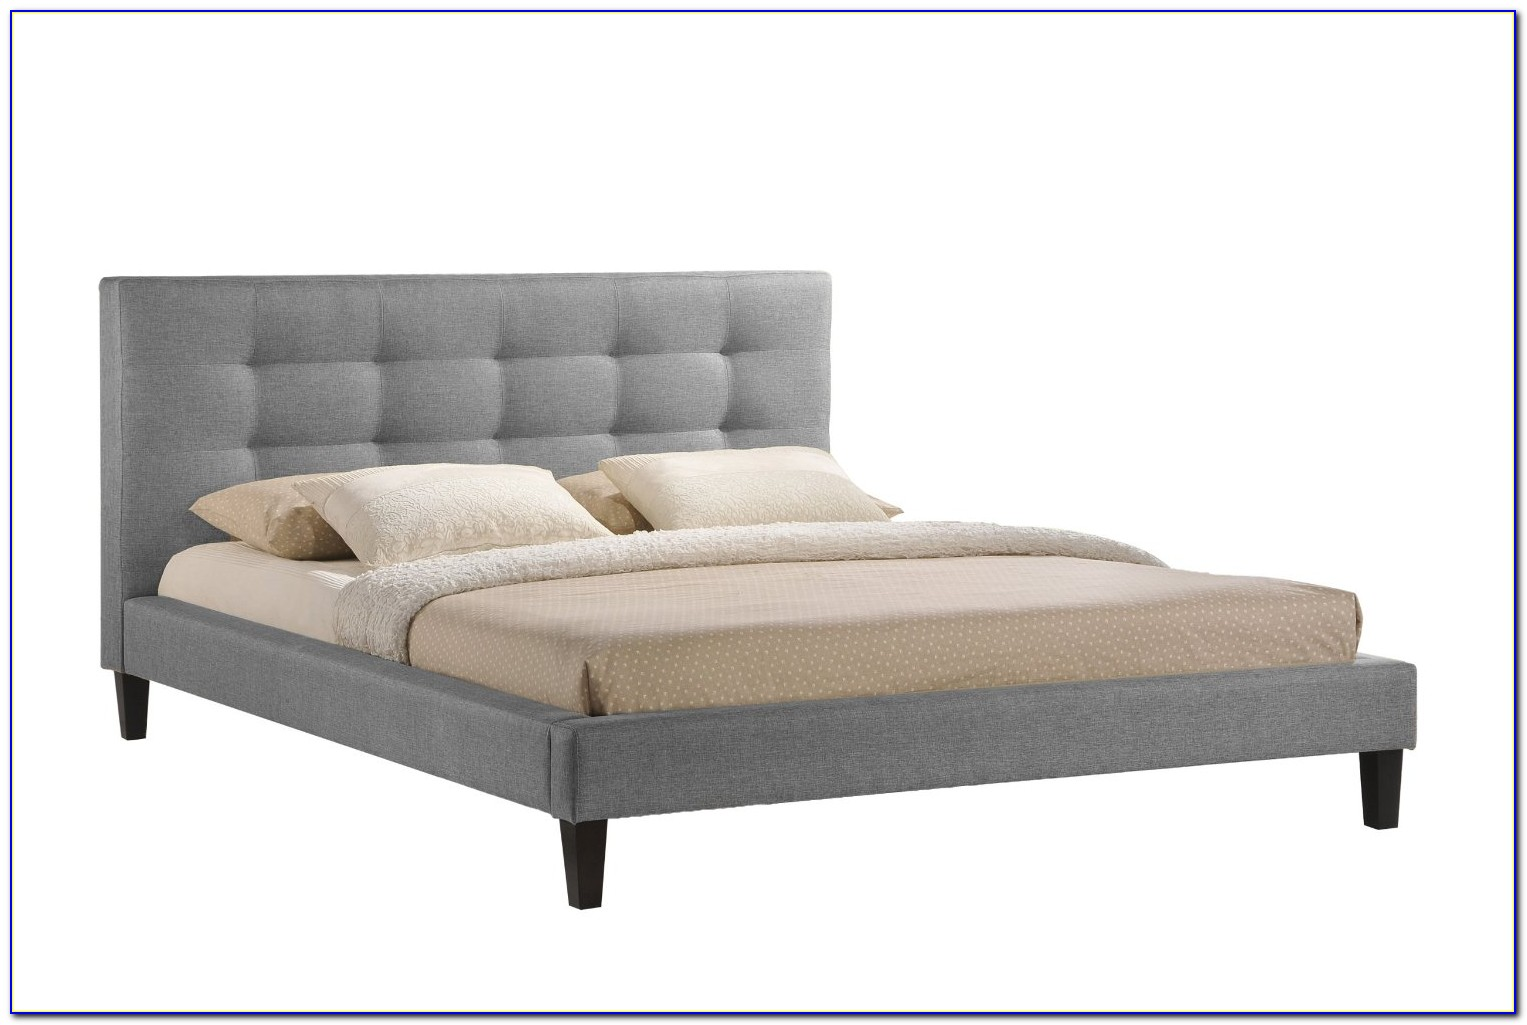 Platform Beds With Low Headboards